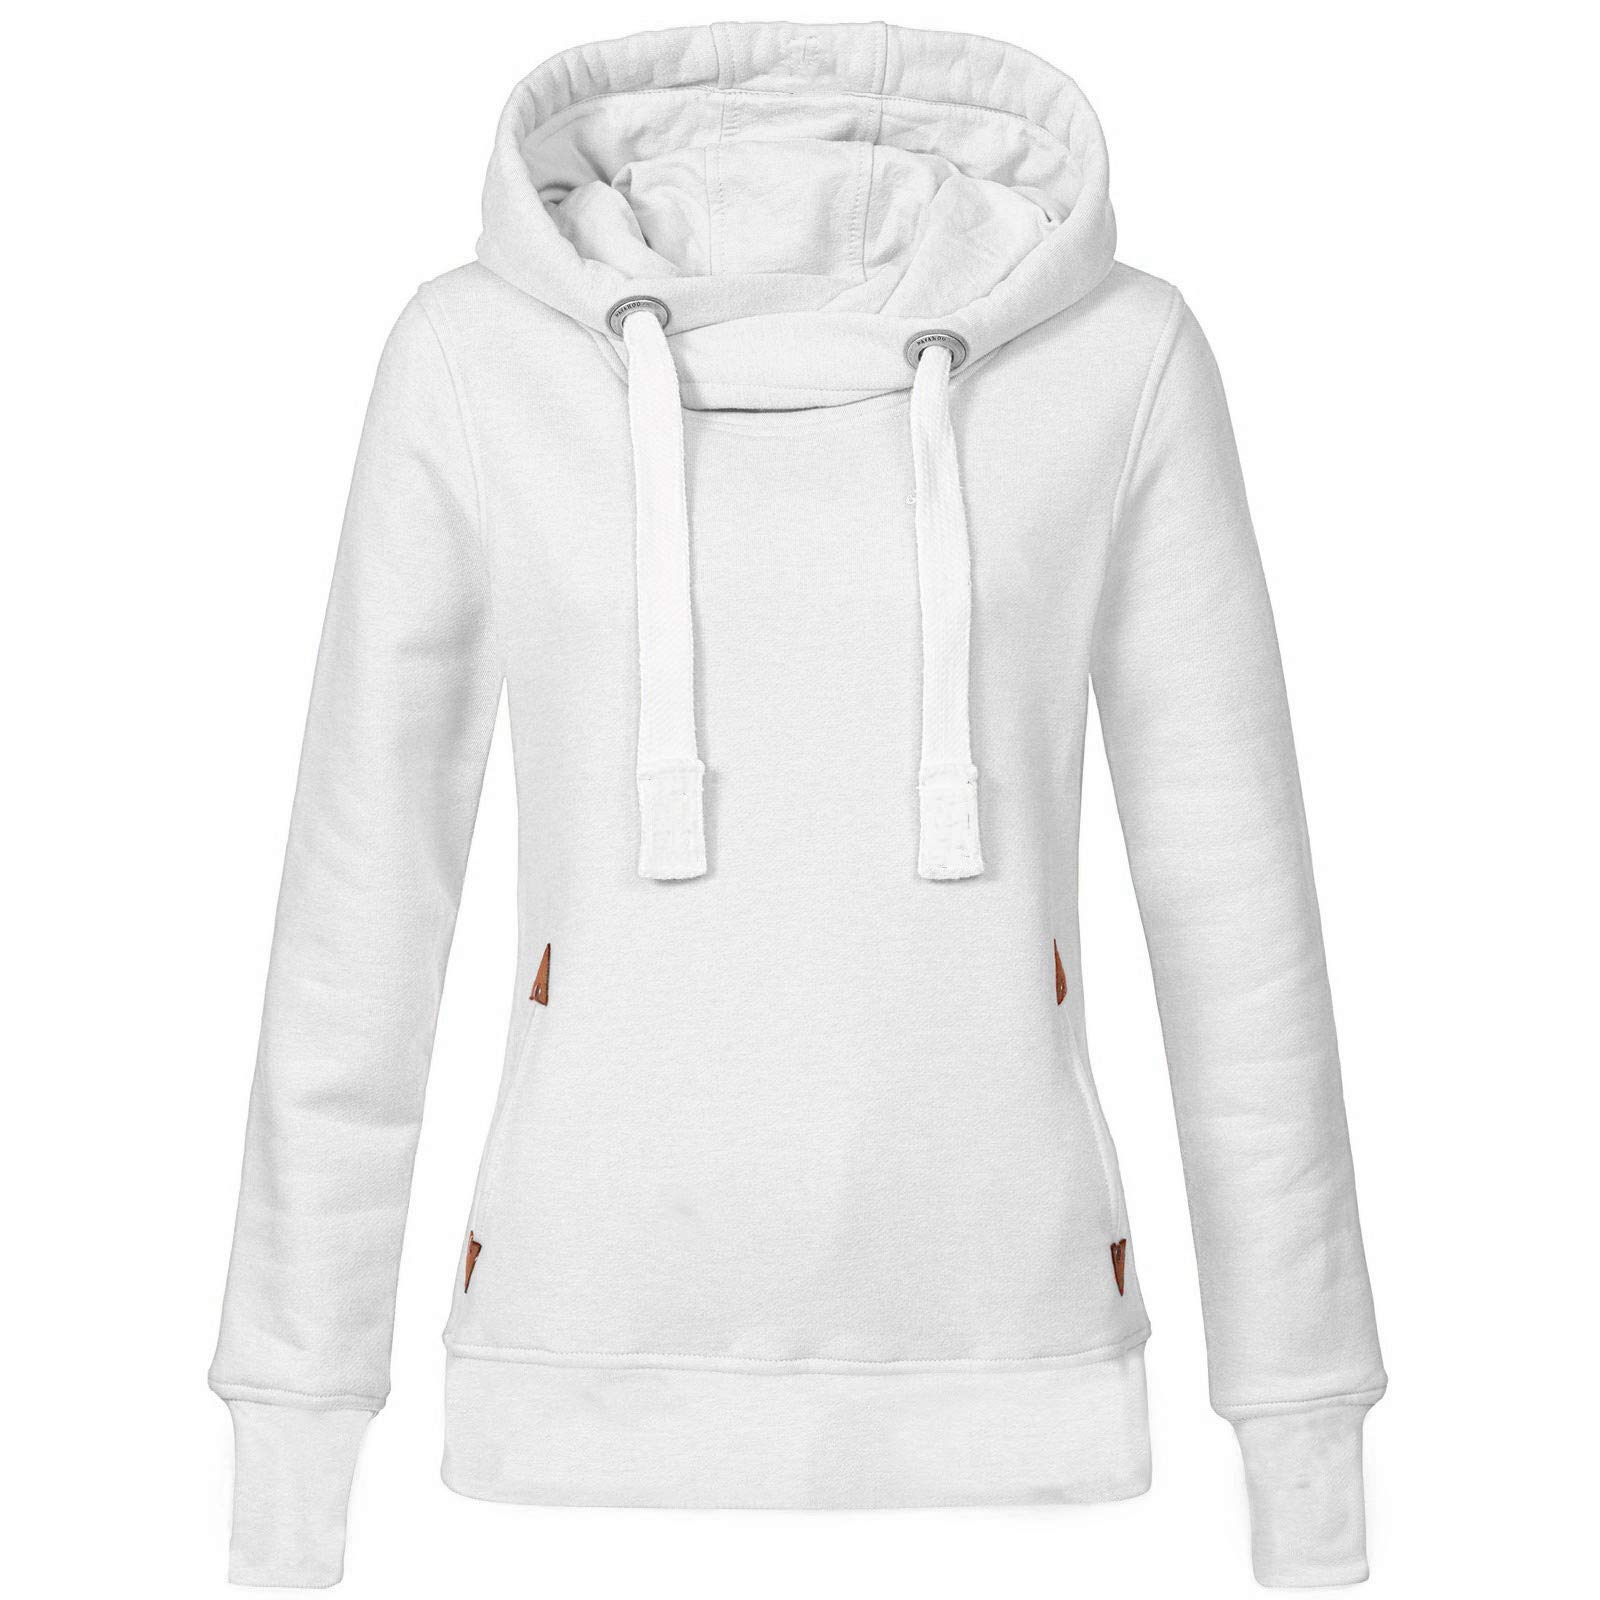 Oversized Pullover Sweaters for Women Plus Size Long Sleeve Solid Sweatshirt Hooded Tops Shirt L